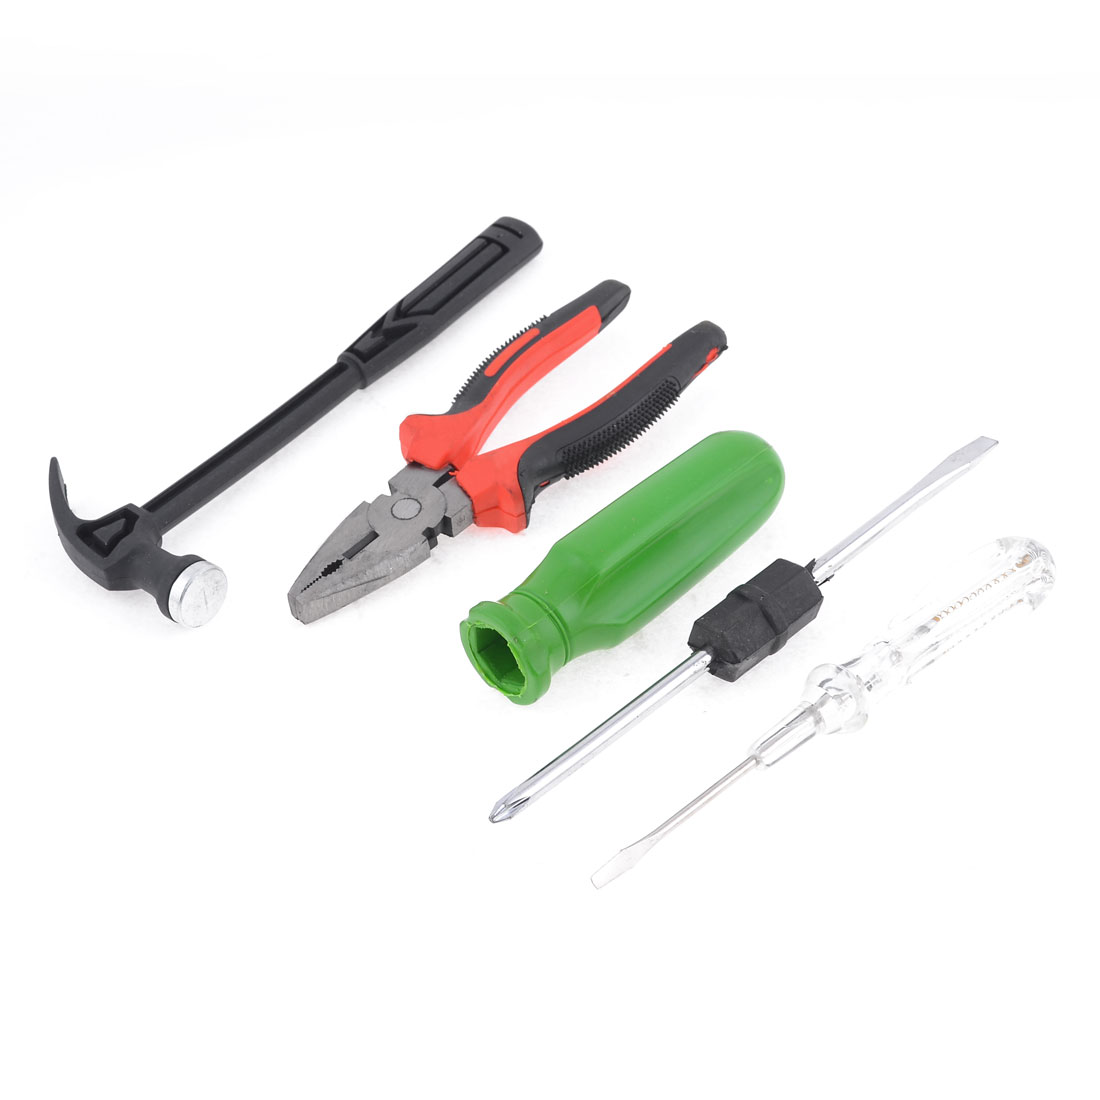 Green Plastic Handle 2 in 1 Slotted Phillips Screwdrivers w Pliers